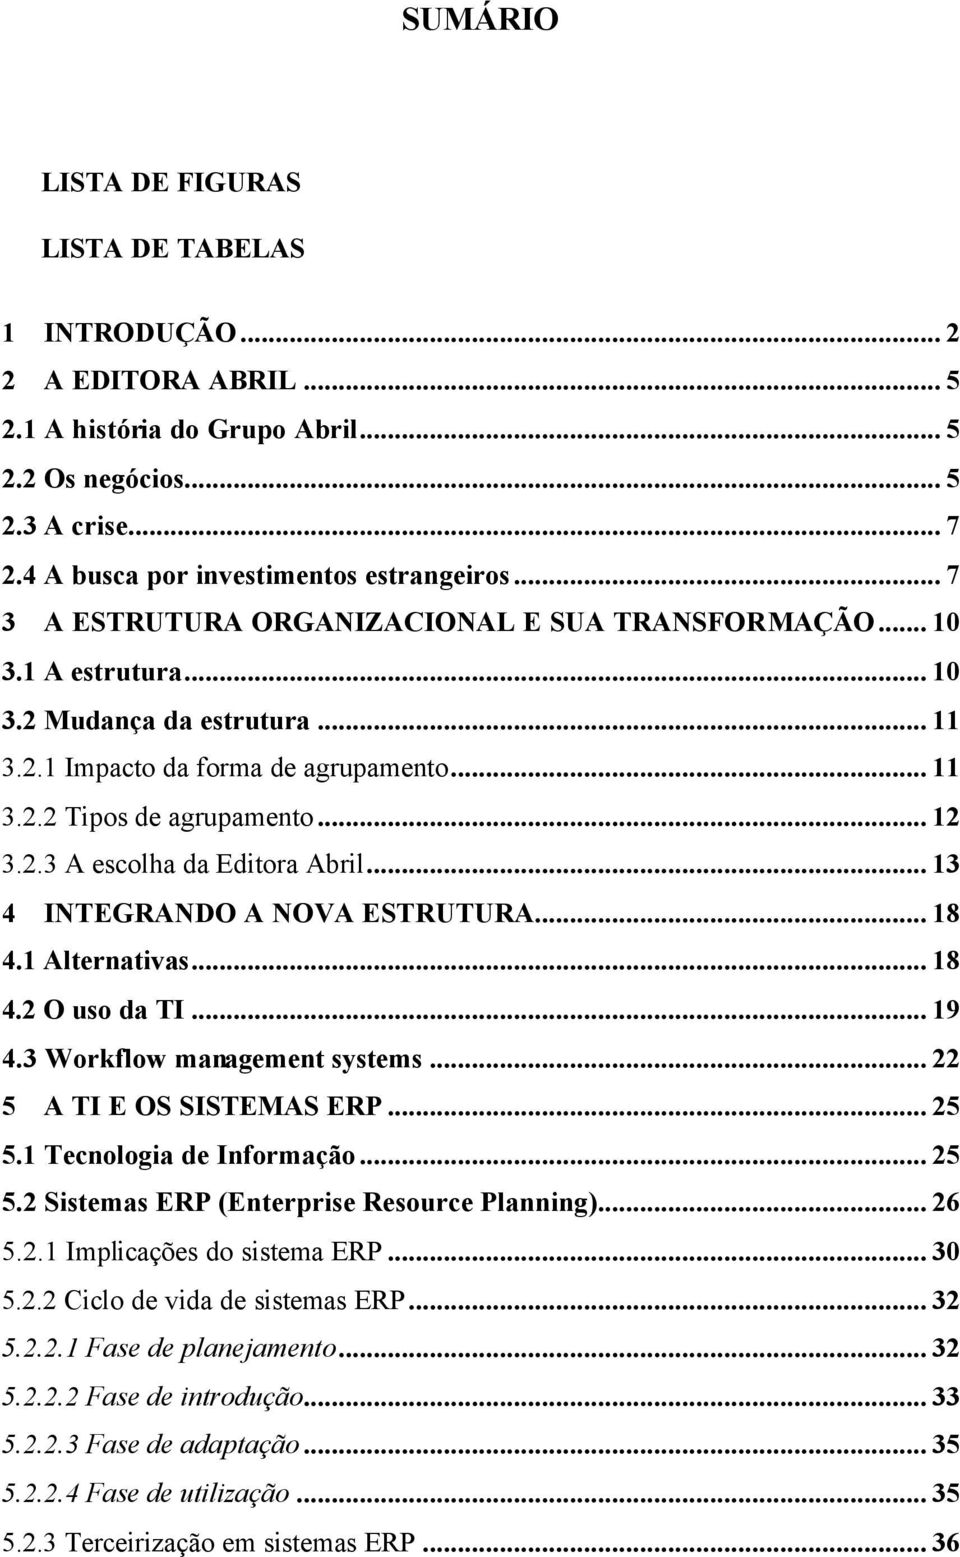 .. 13 4 INTEGRANDO A NOVA ESTRUTURA... 18 4.1 Alternativas... 18 4.2 O uso da TI... 19 4.3 Workflow management systems... 22 5 A TI E OS SISTEMAS ERP... 25 5.